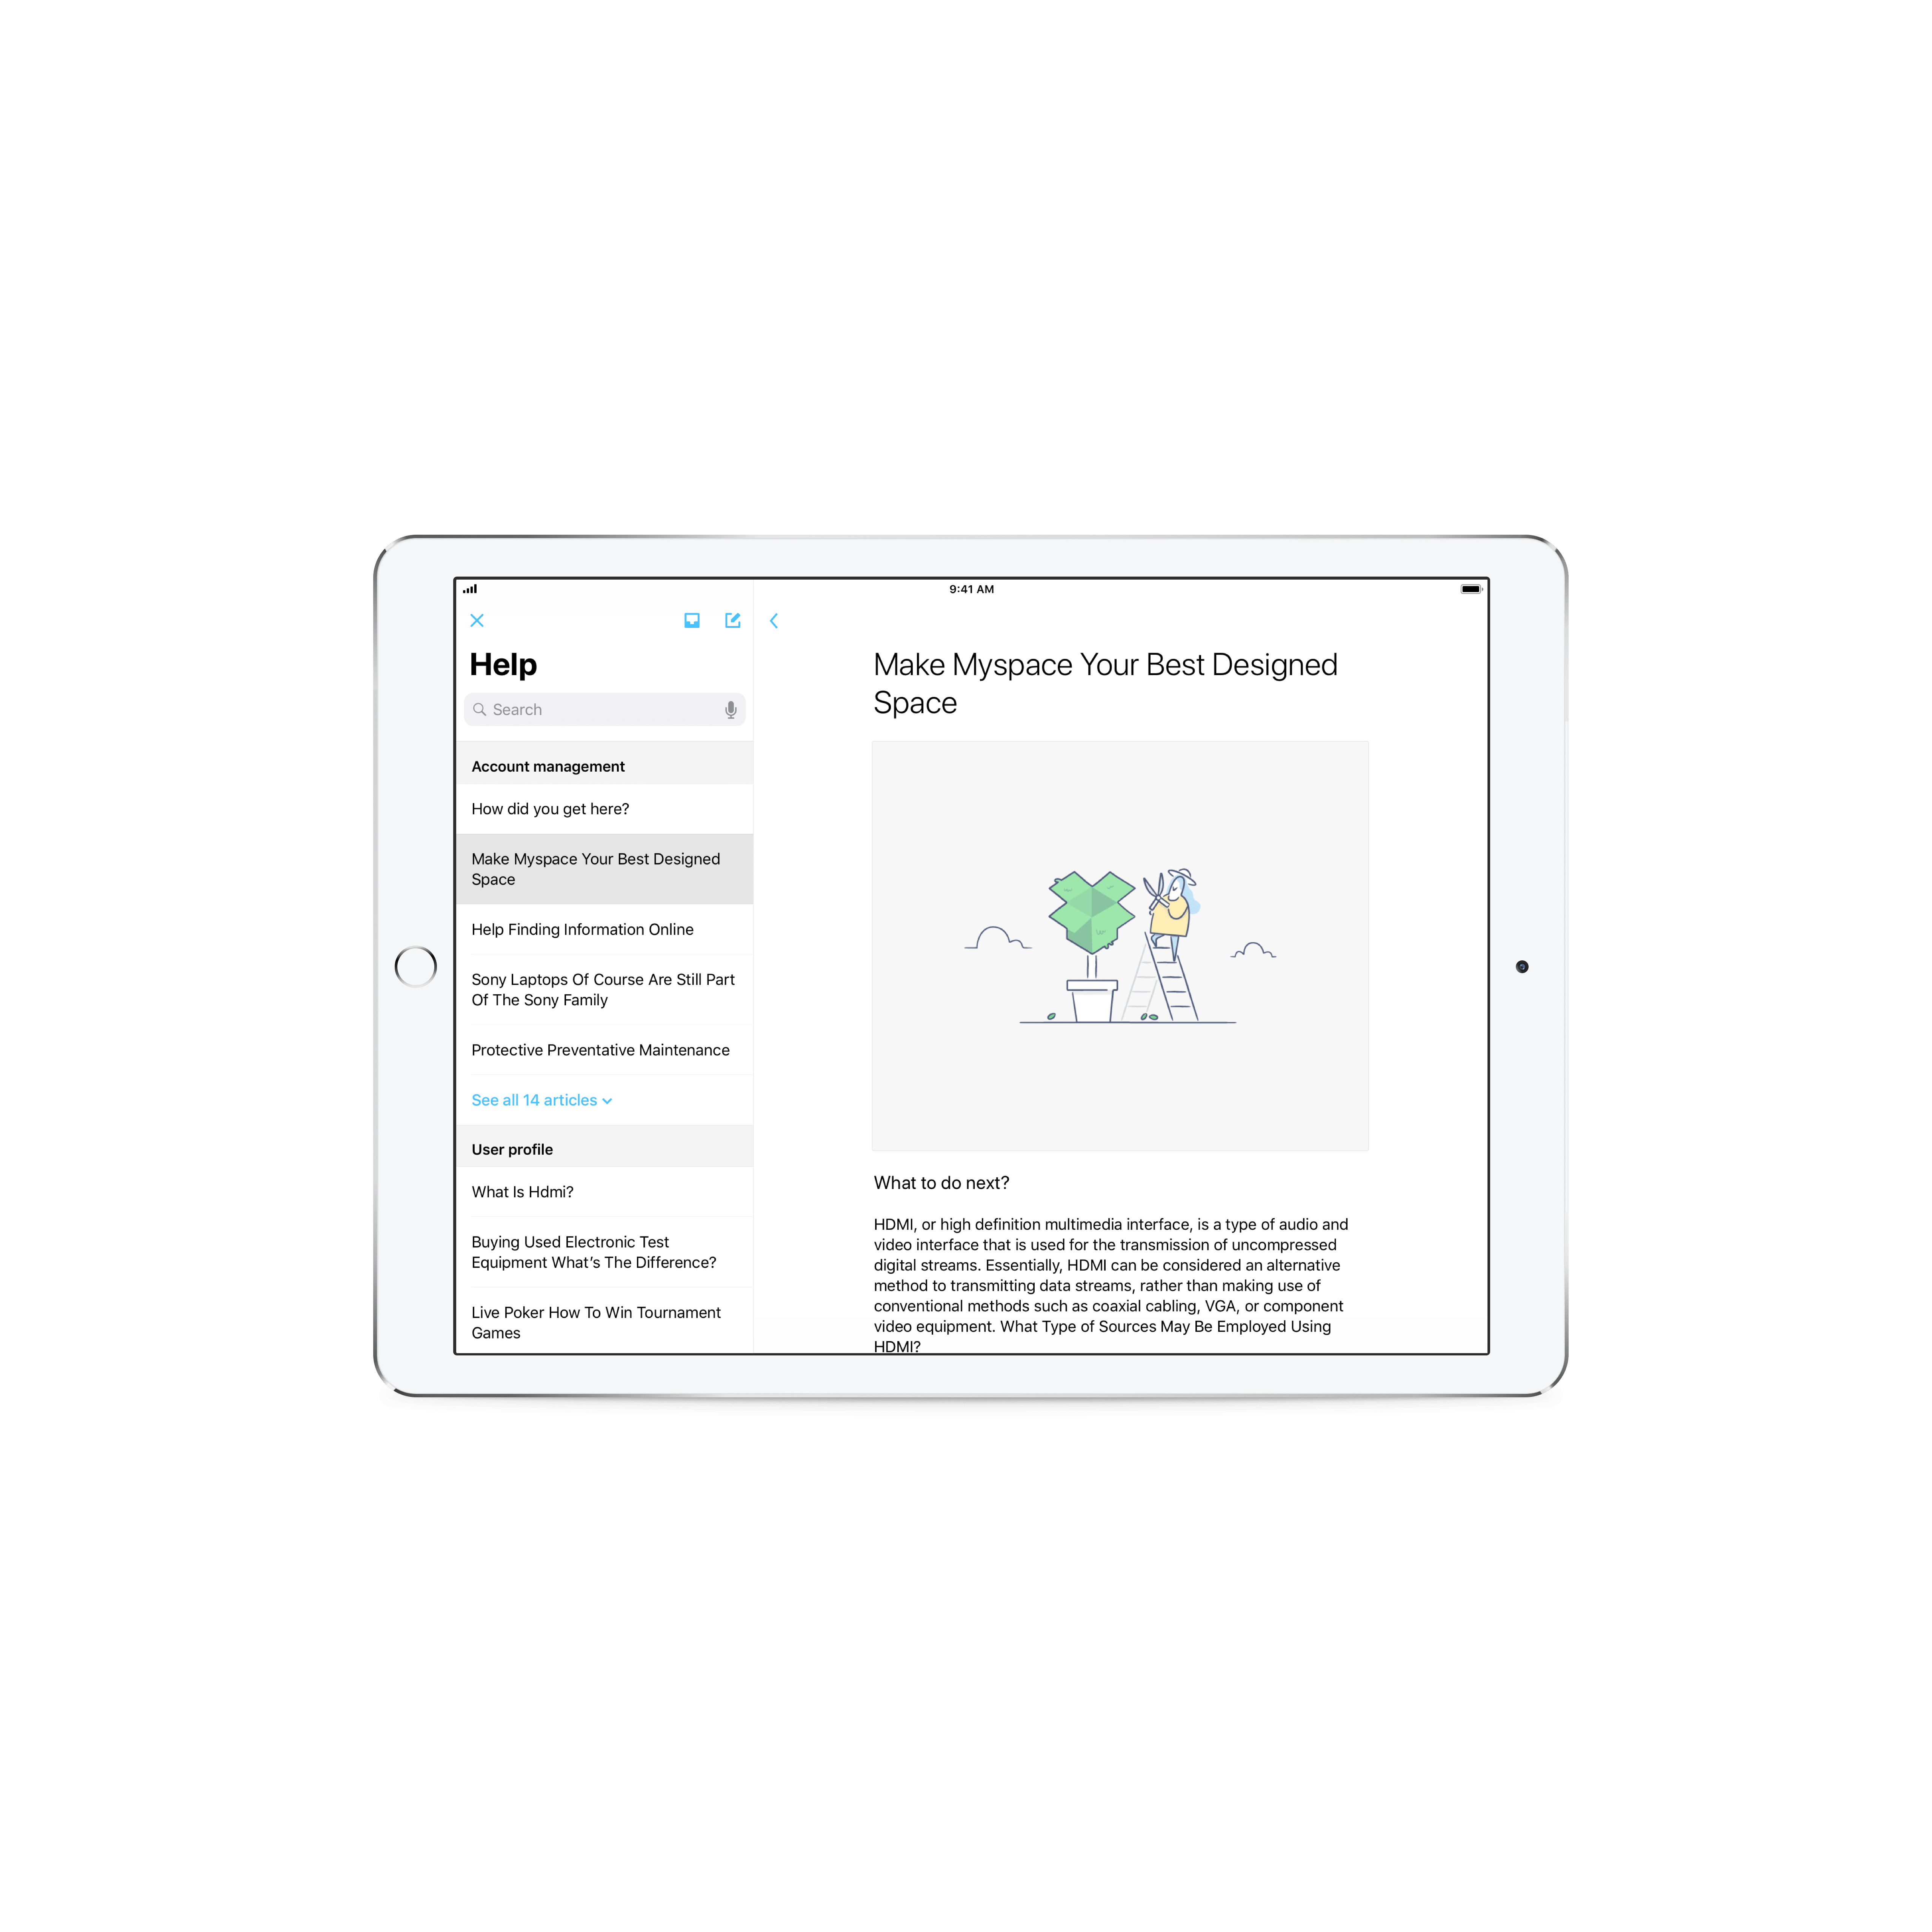 iPhone X app design of Mail Simple email client for iOS. Splash screen with logo